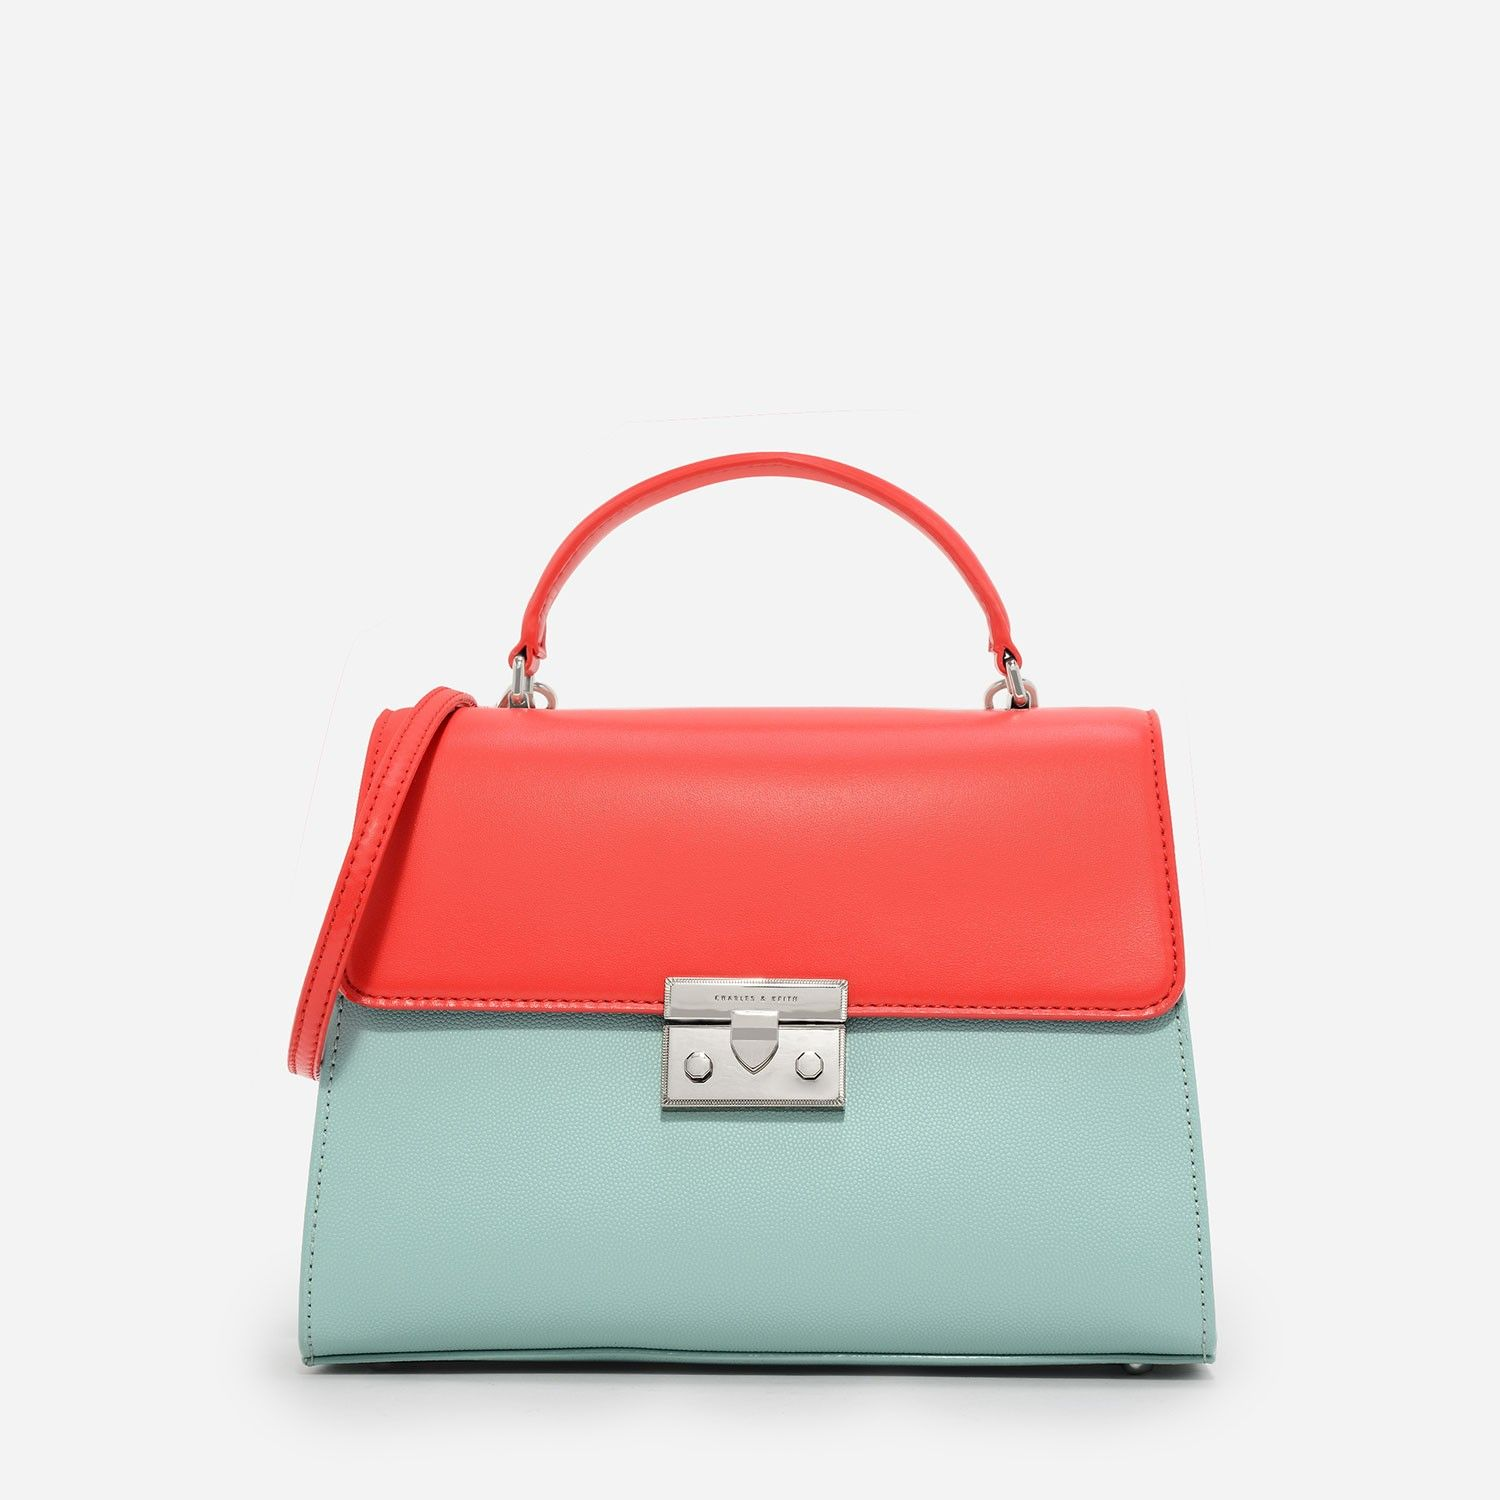 CHARLES & KEITH - Bags. Coral two-tone mid-sized top handle bag